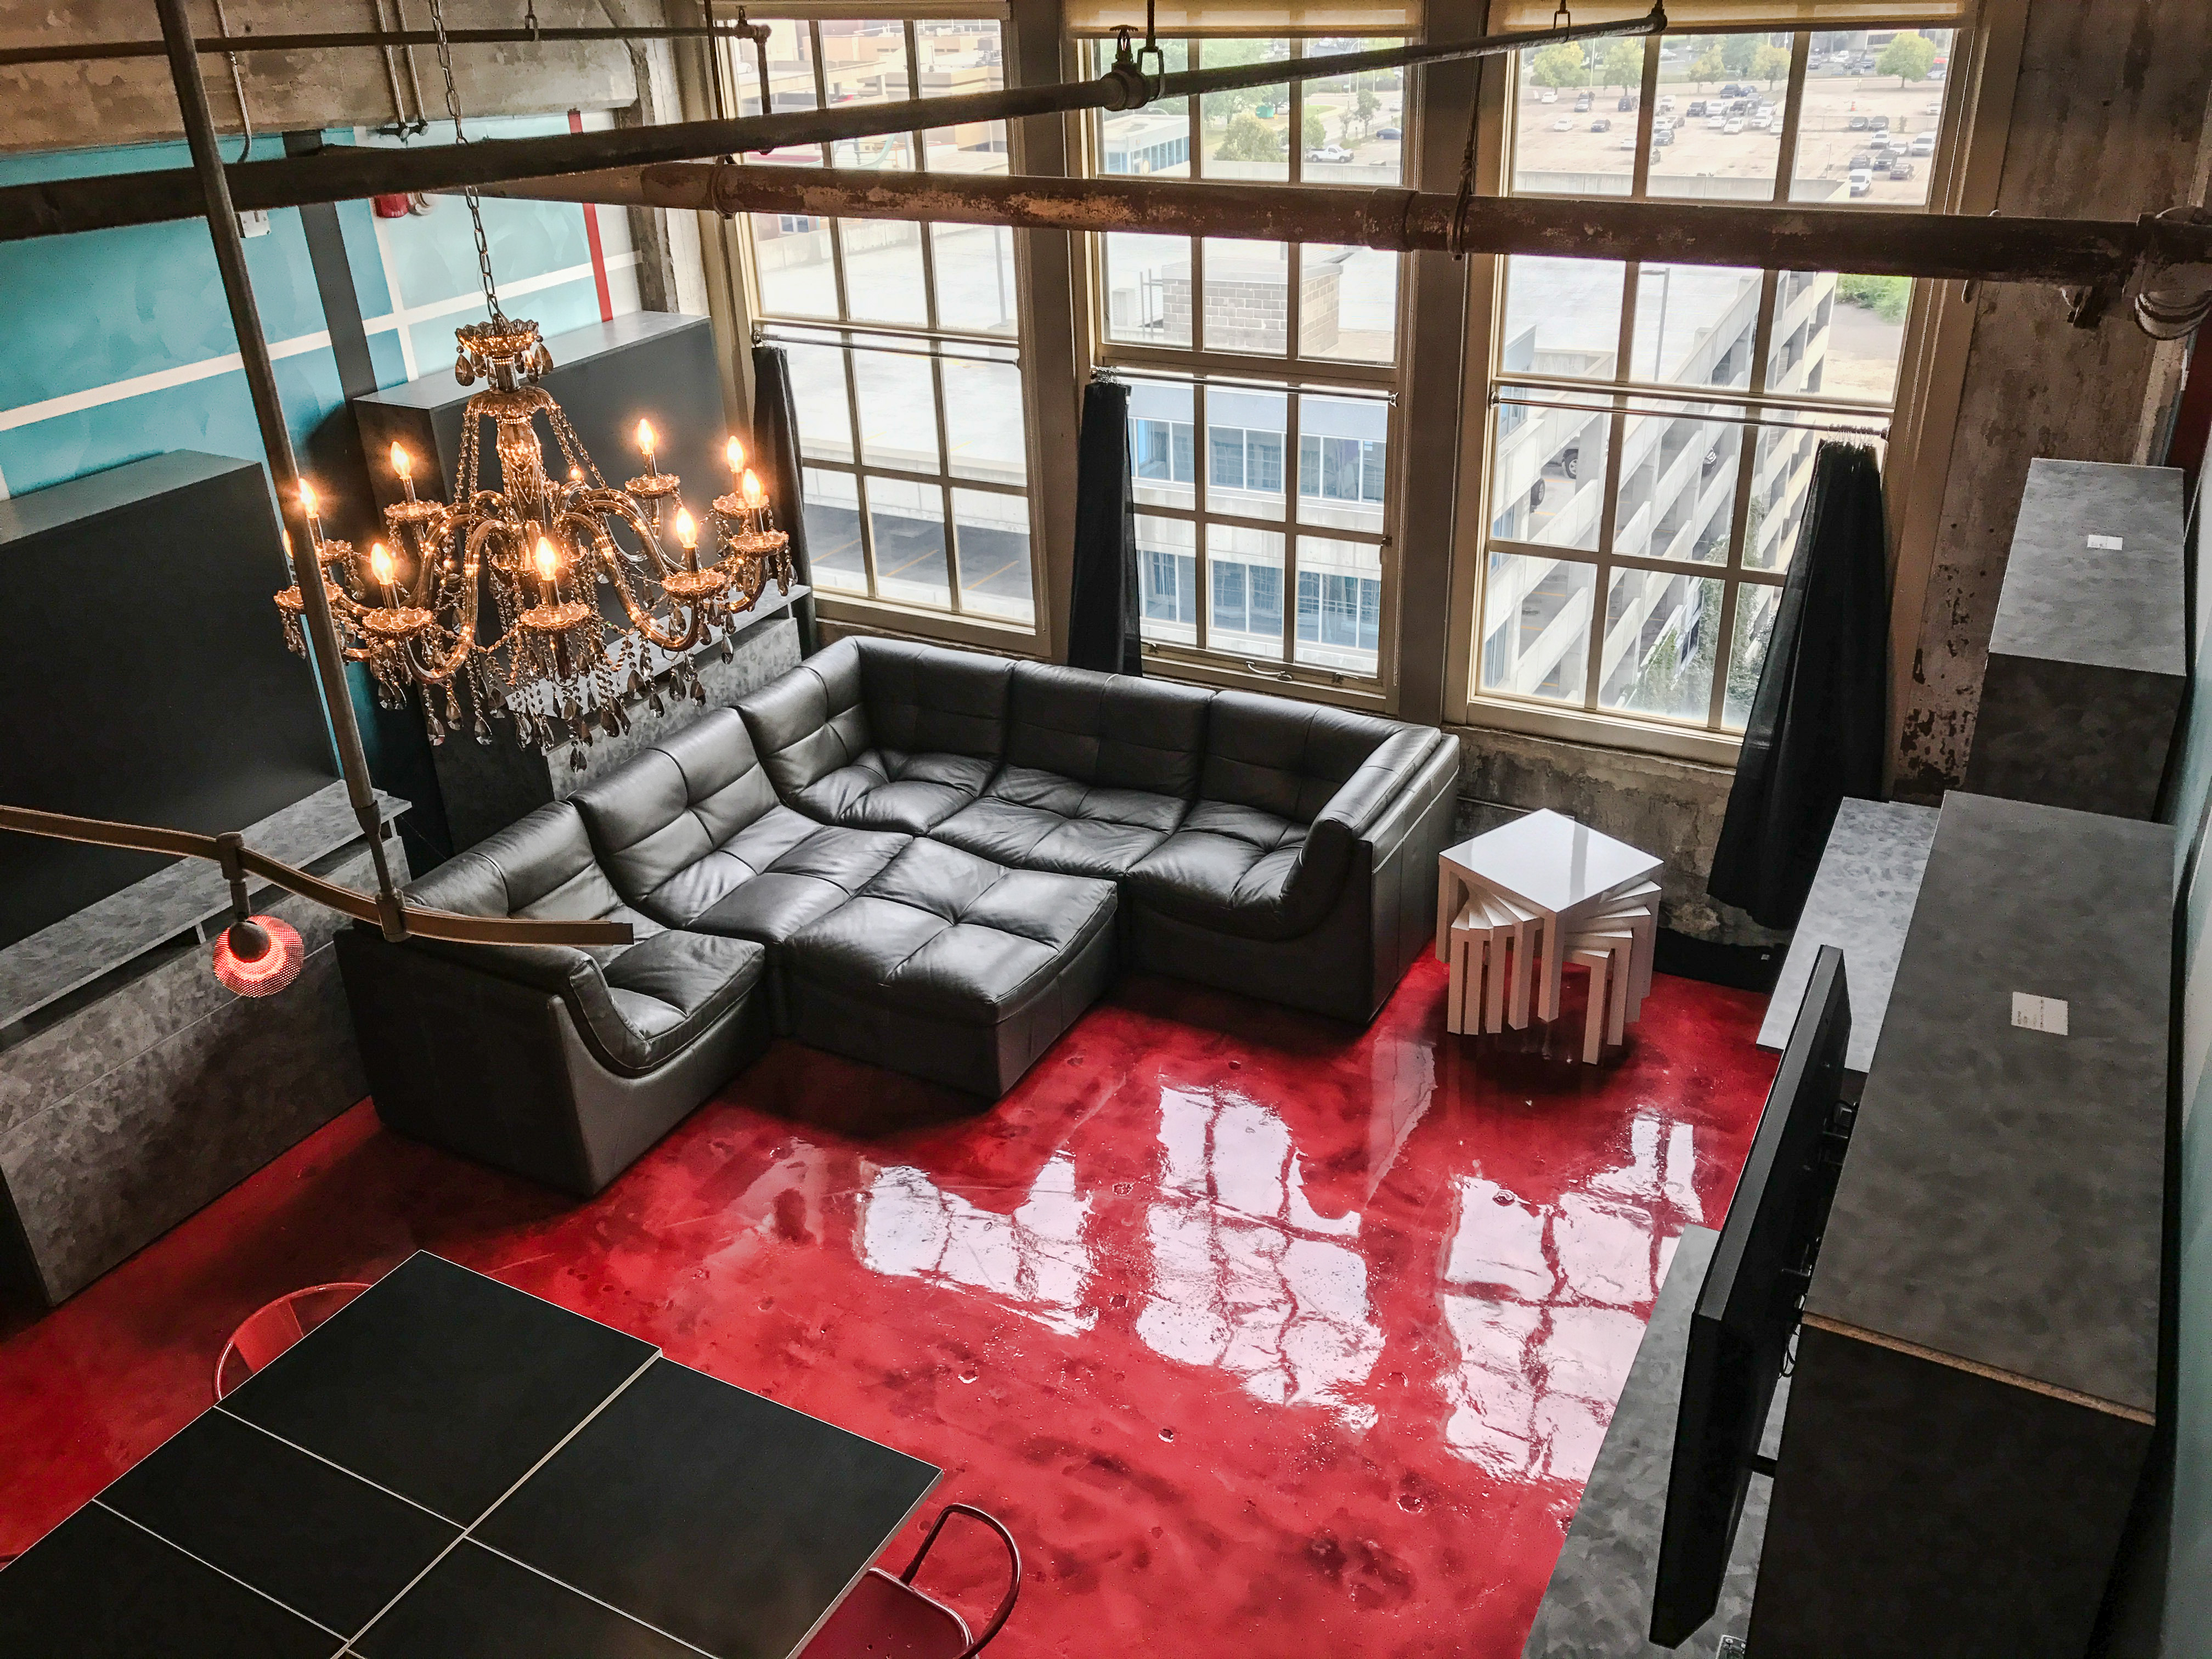 Loft Reverie Hotel 809 - A loft with 4x the space as your average hotel + 900 sf + BIG Loft + Chande